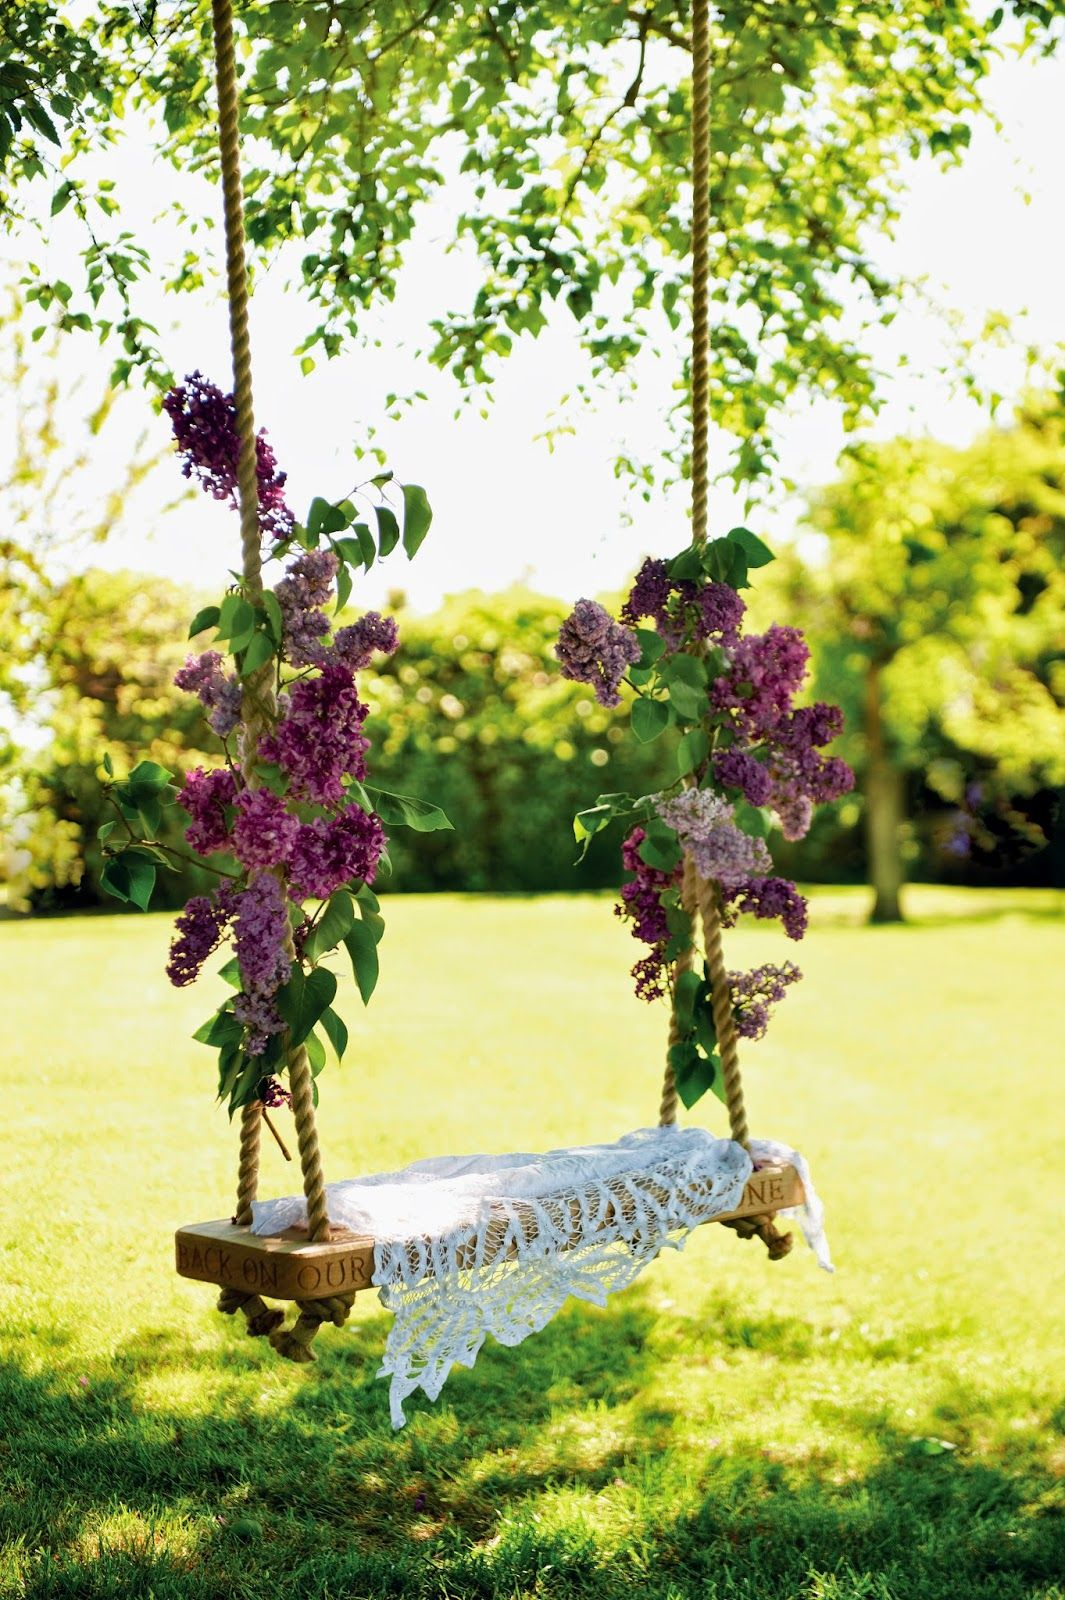 Lilac branches tied to a garden swing Full details on